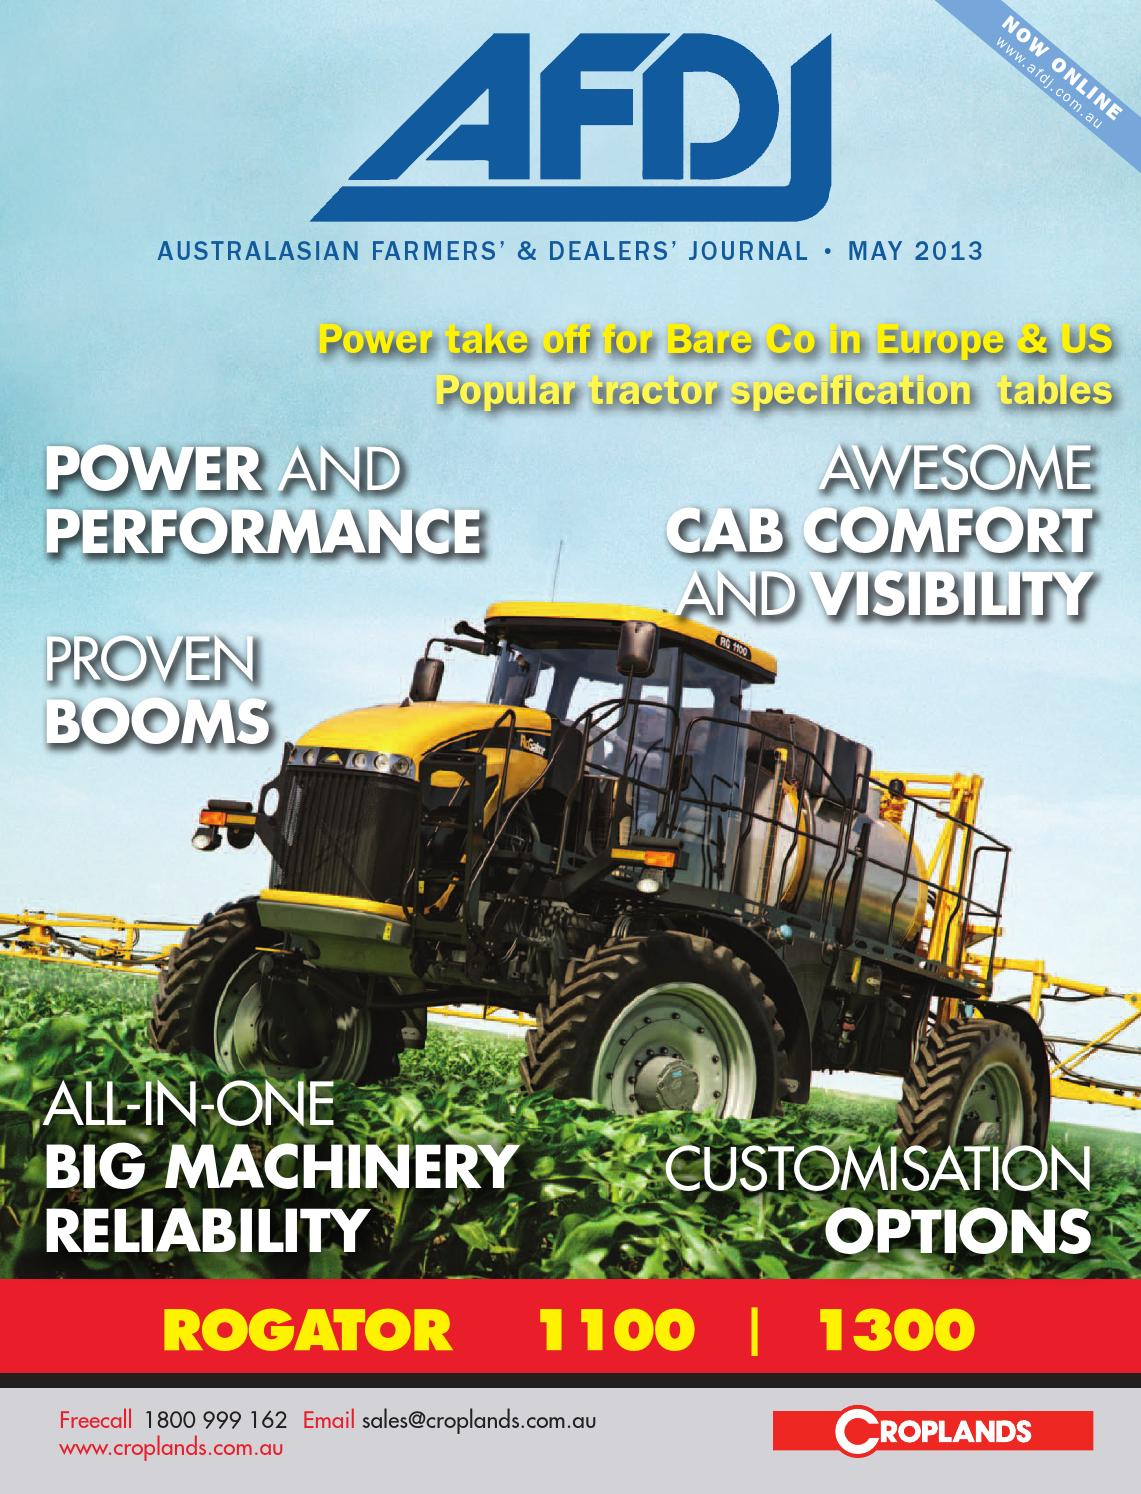 Australiasian Farmers Dealers Journal By Provincial Press Group Gx200 Va2 Engine Jpn Honda Small Cylinder Diagram And Parts Issuu